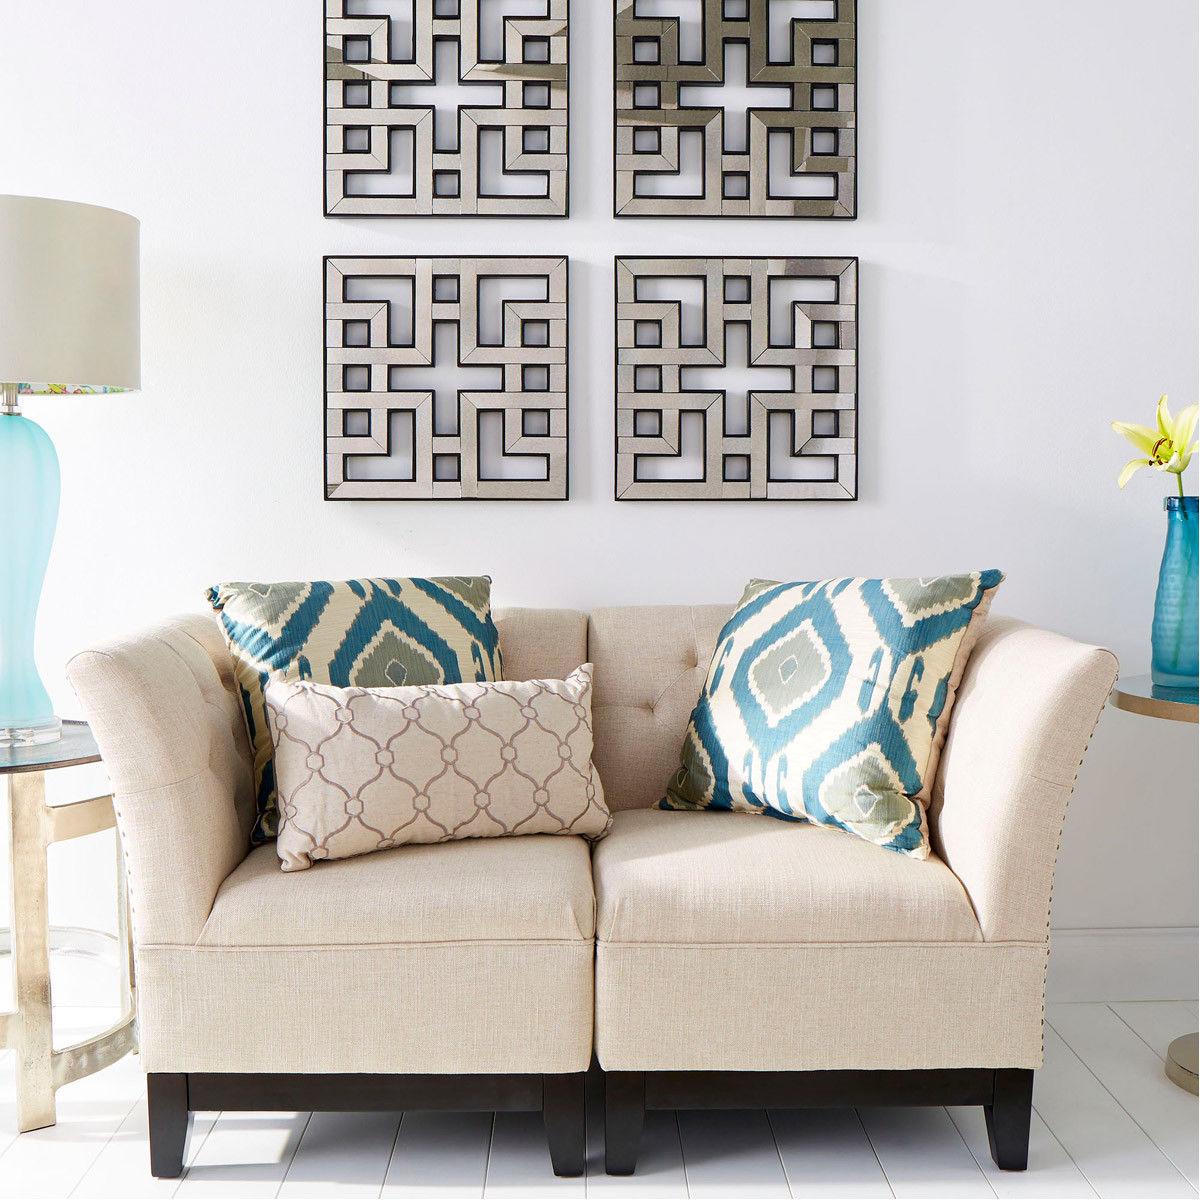 Asian Style Wall Mirrors Four Fretwork Wall Mirrors Asian Style Antiqued Wood Frame